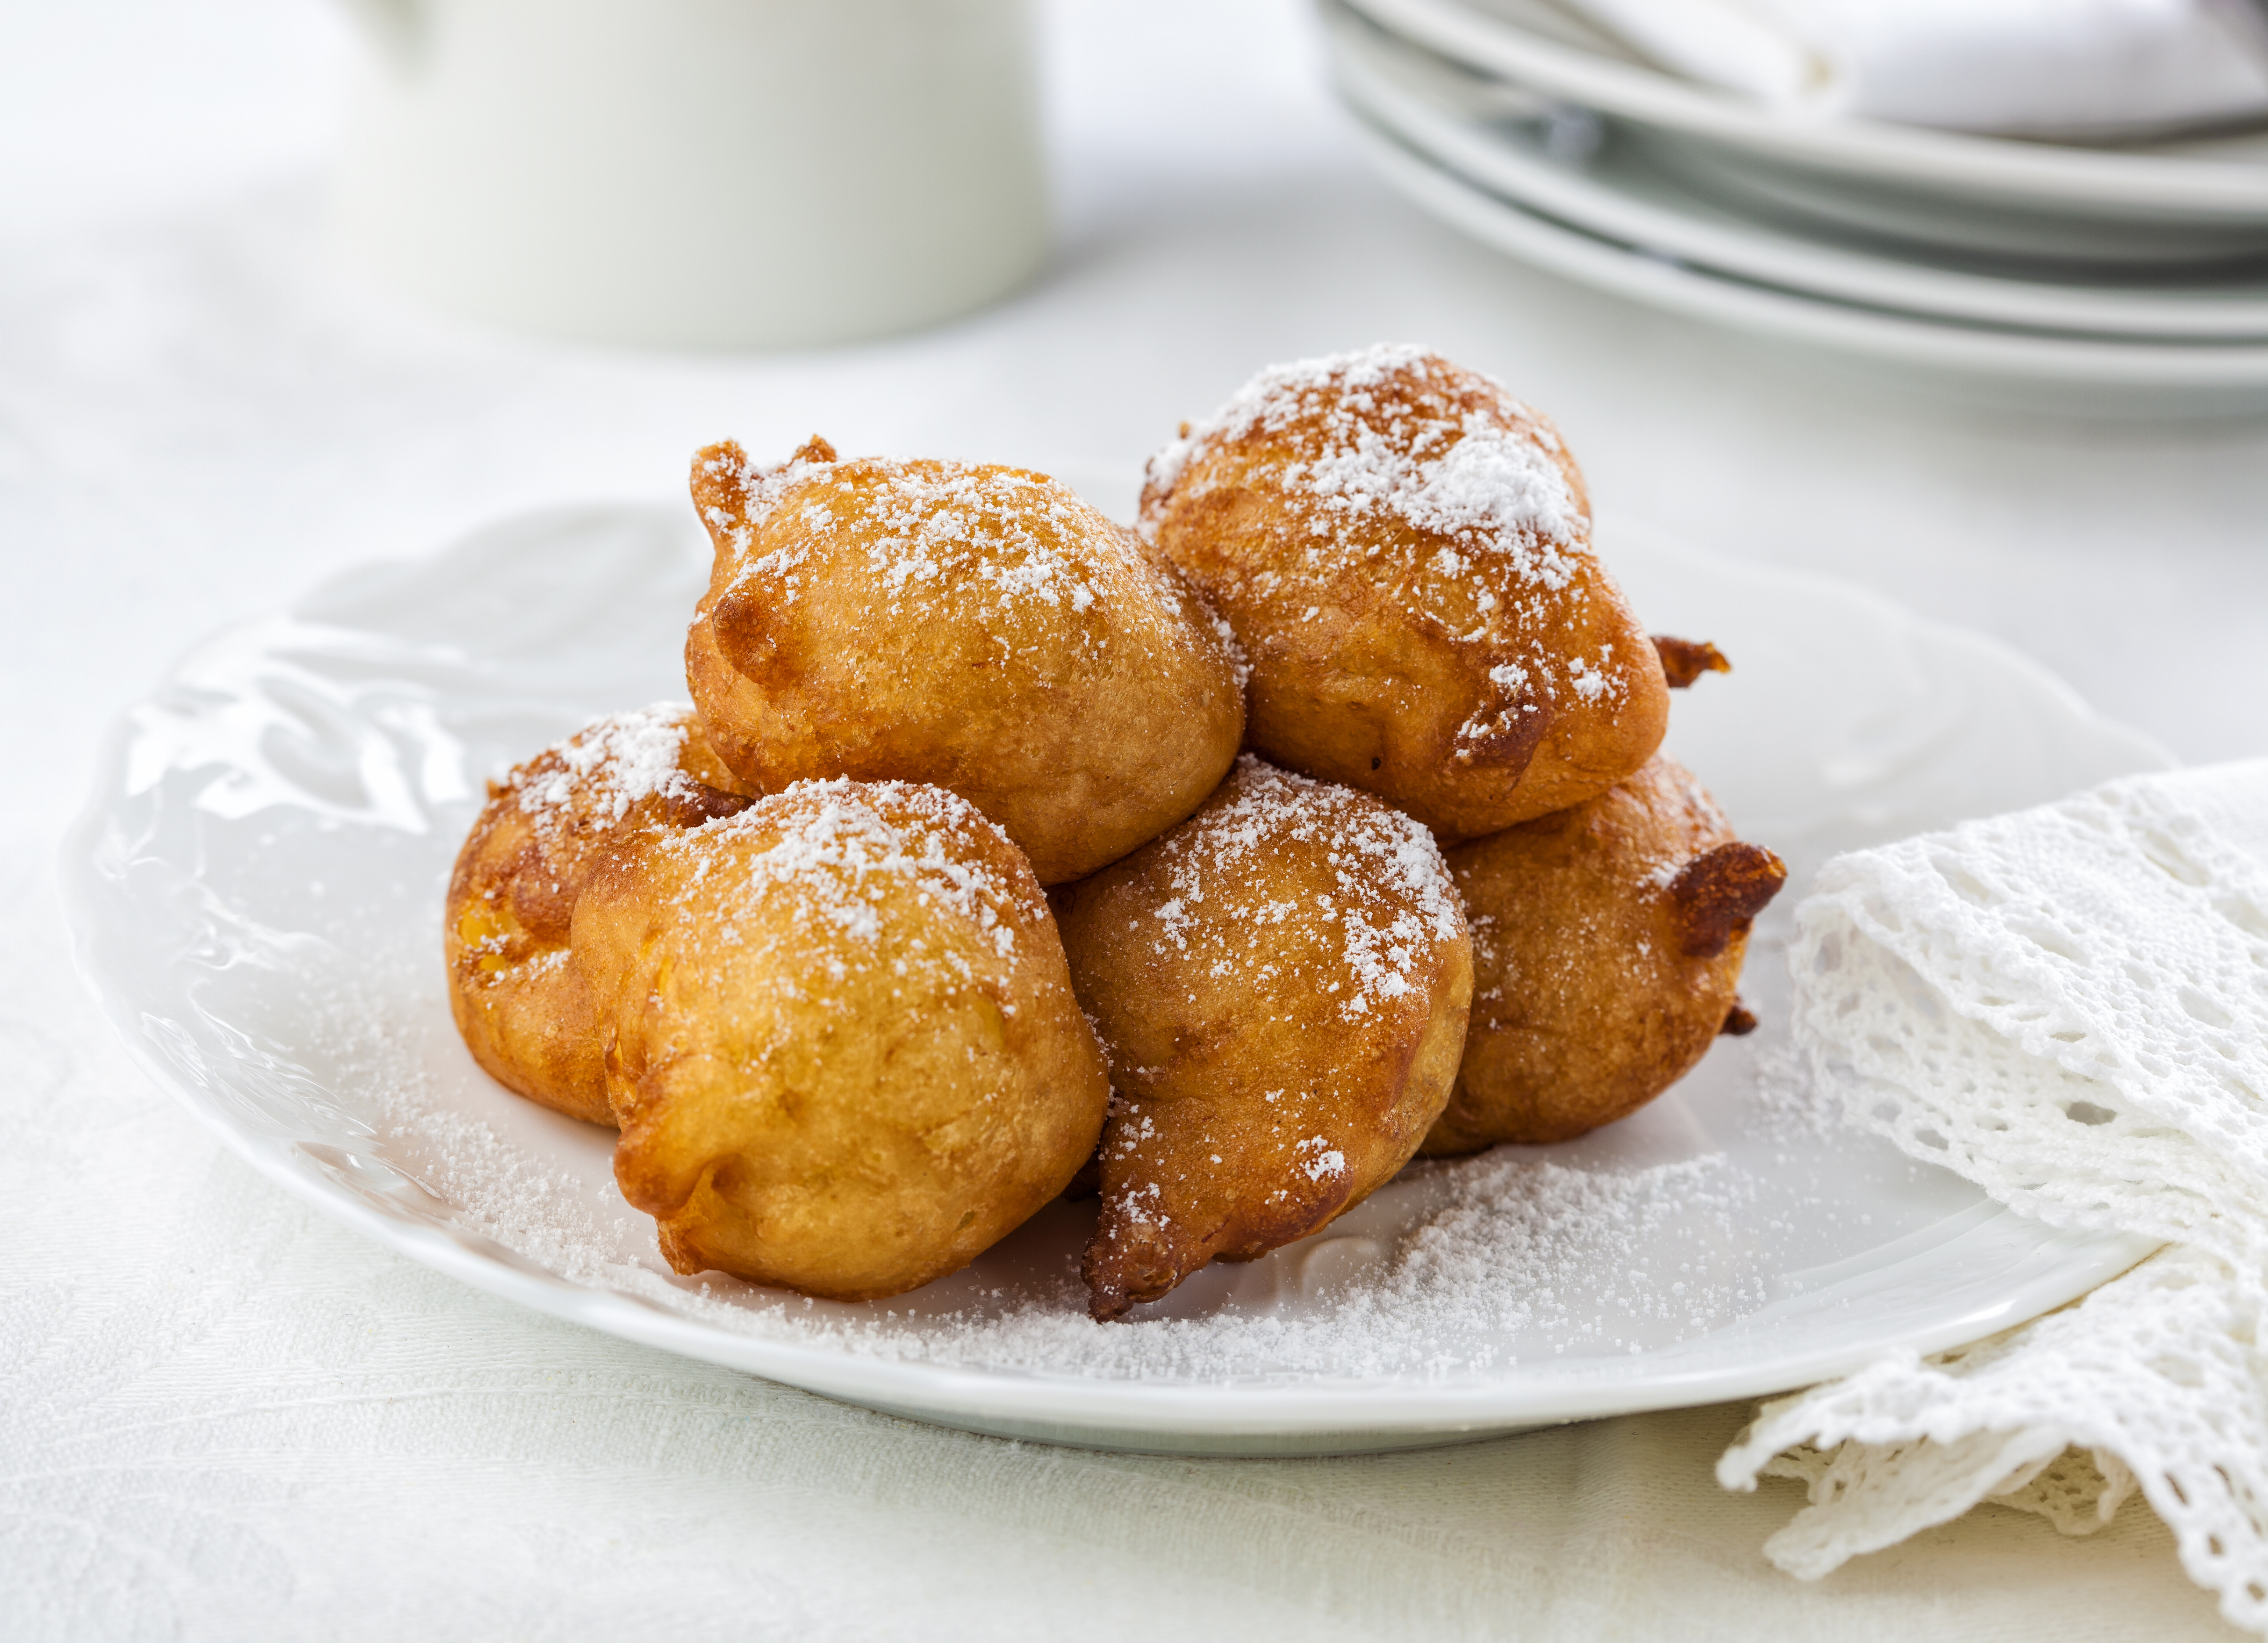 The Nutritional Content Of A Fried Apple Fritter